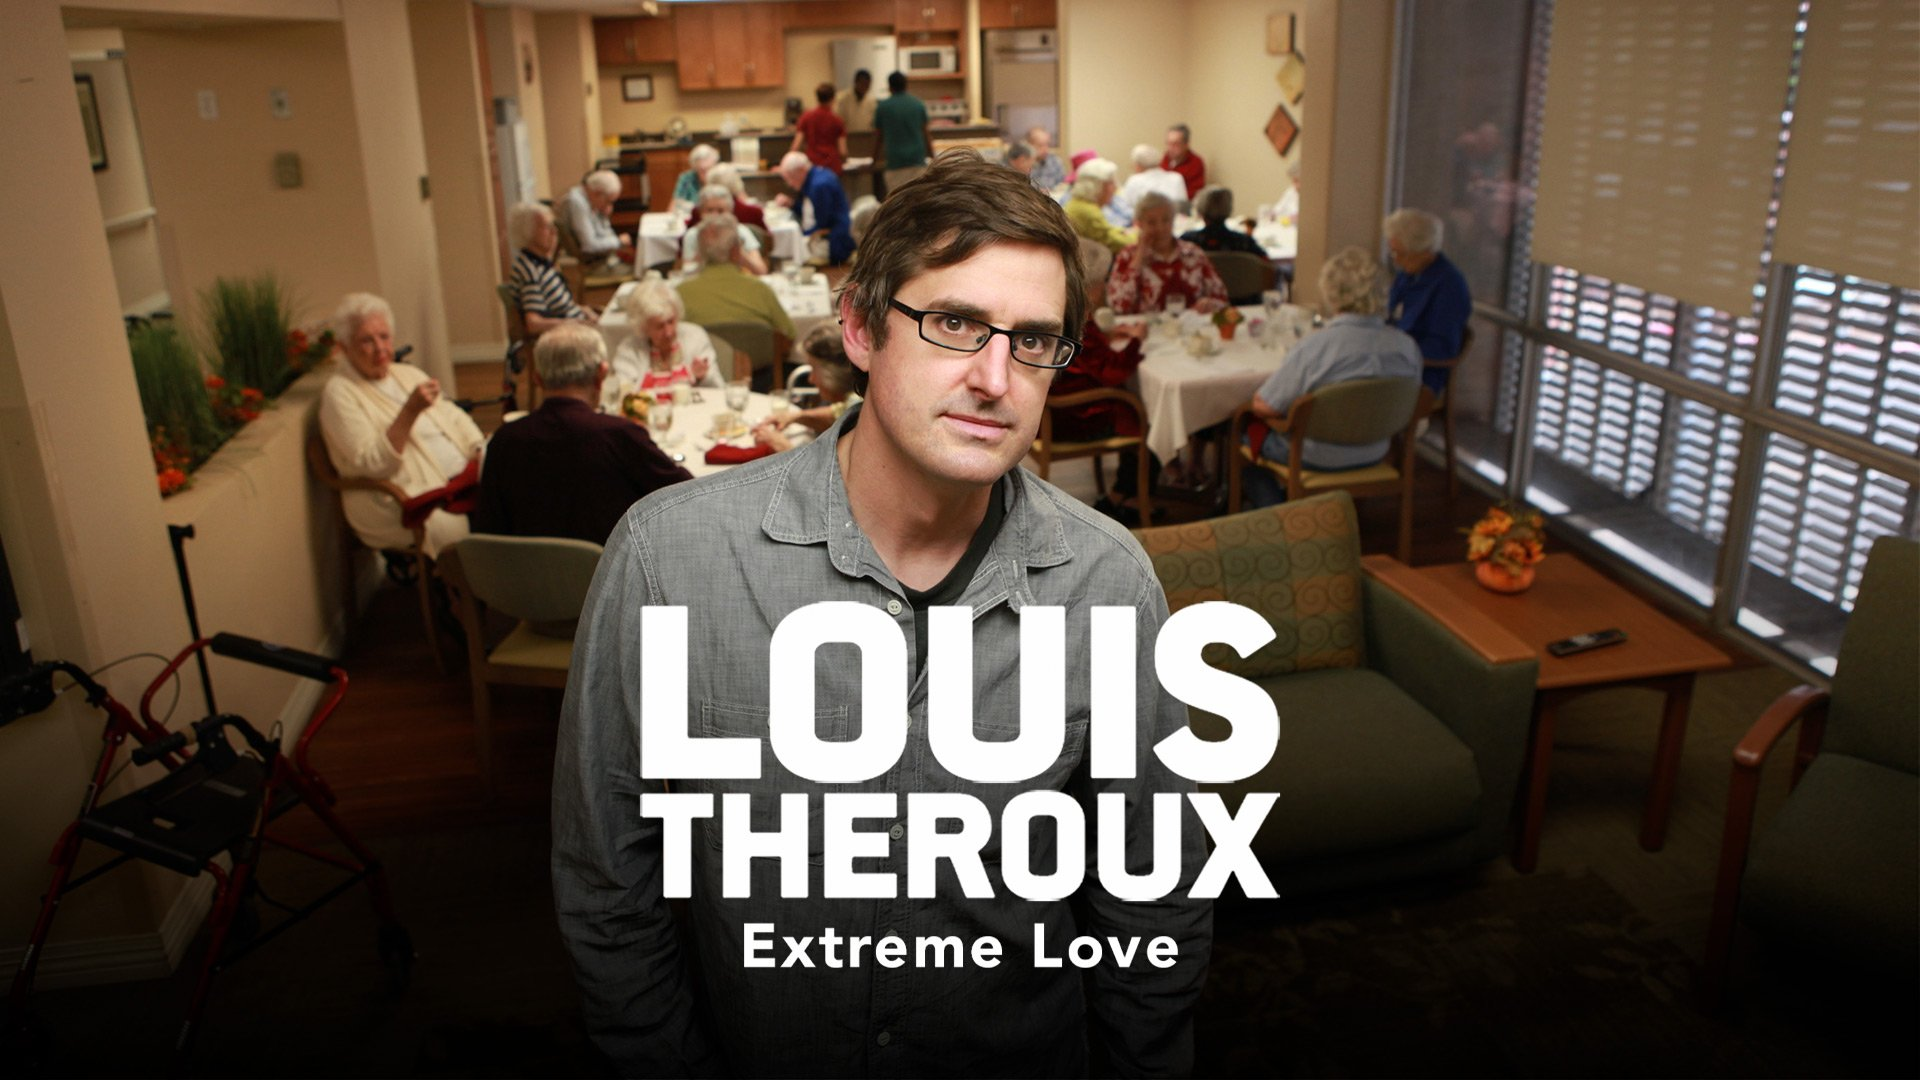 Louis Theroux: Extreme Love on BritBox UK